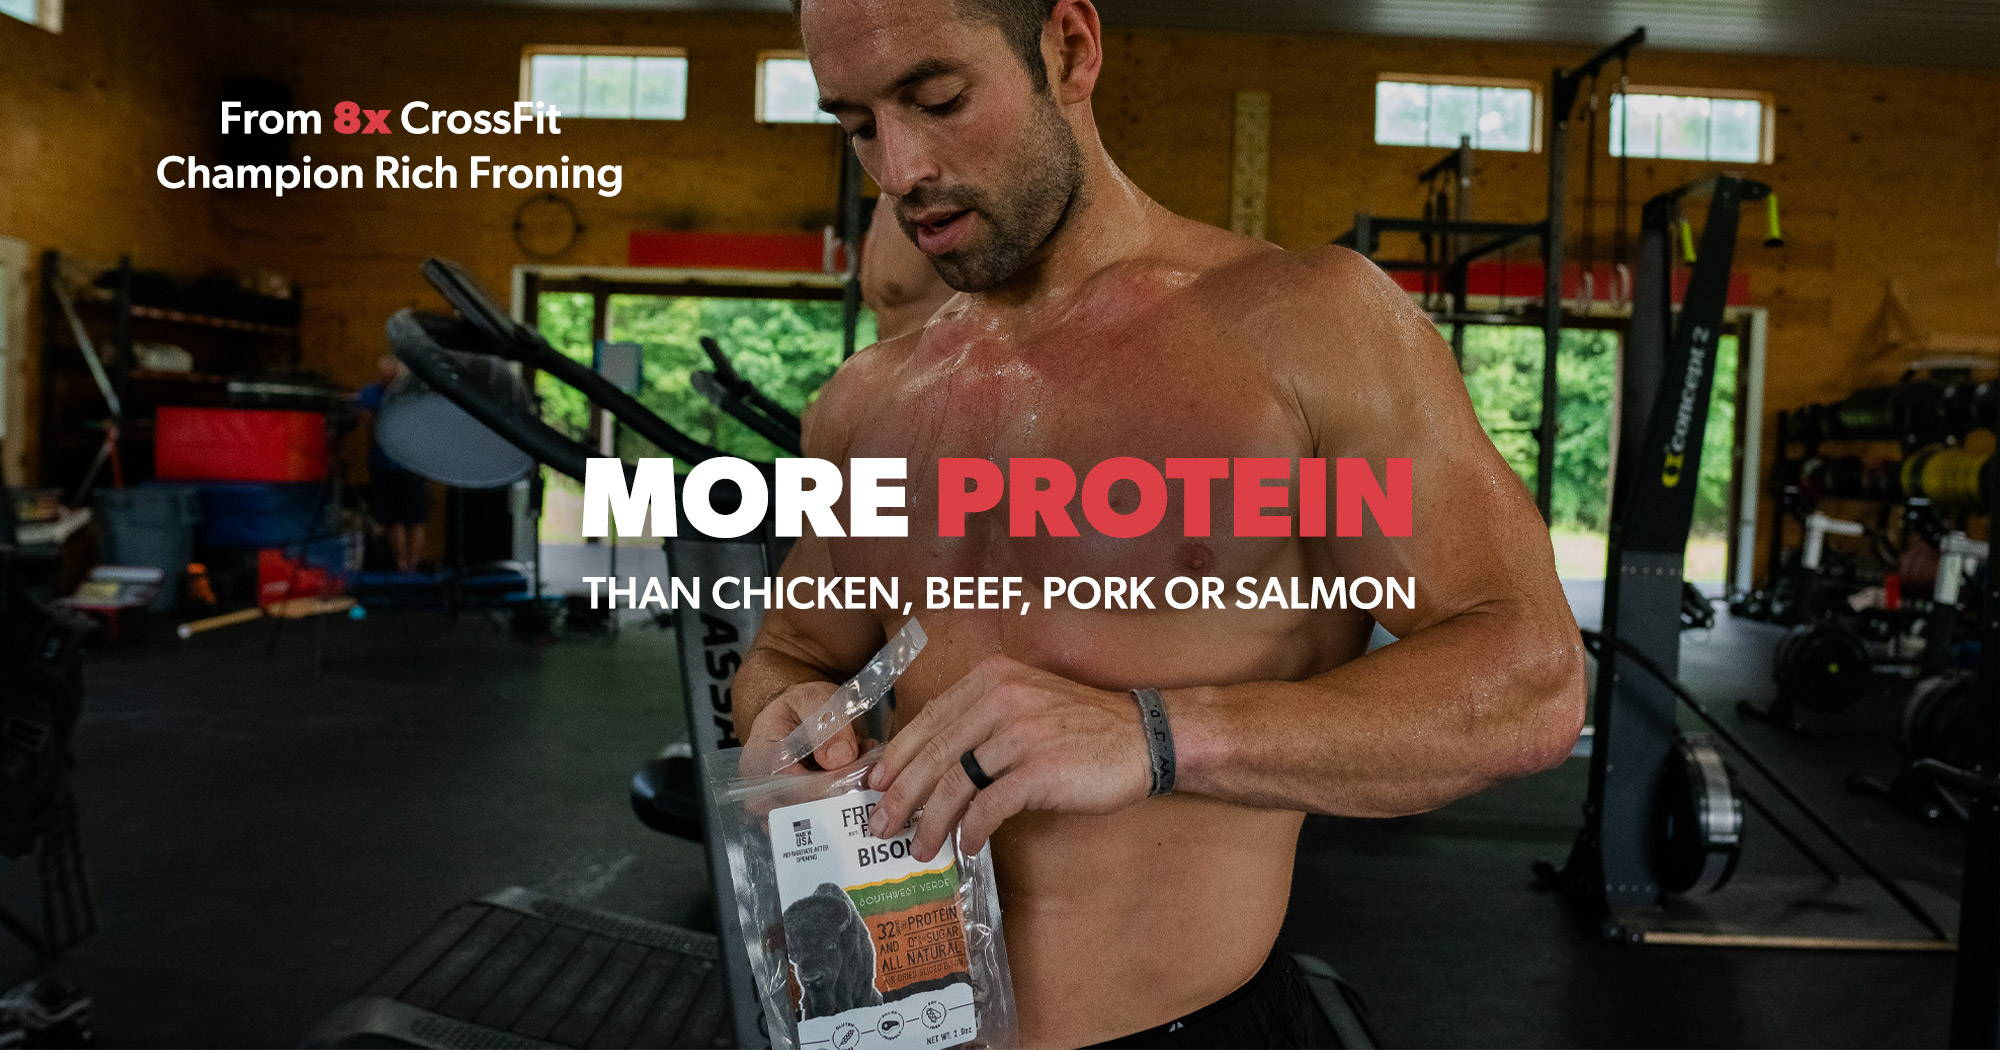 Froning Farms Rich Froning 8X Crossfit Champion